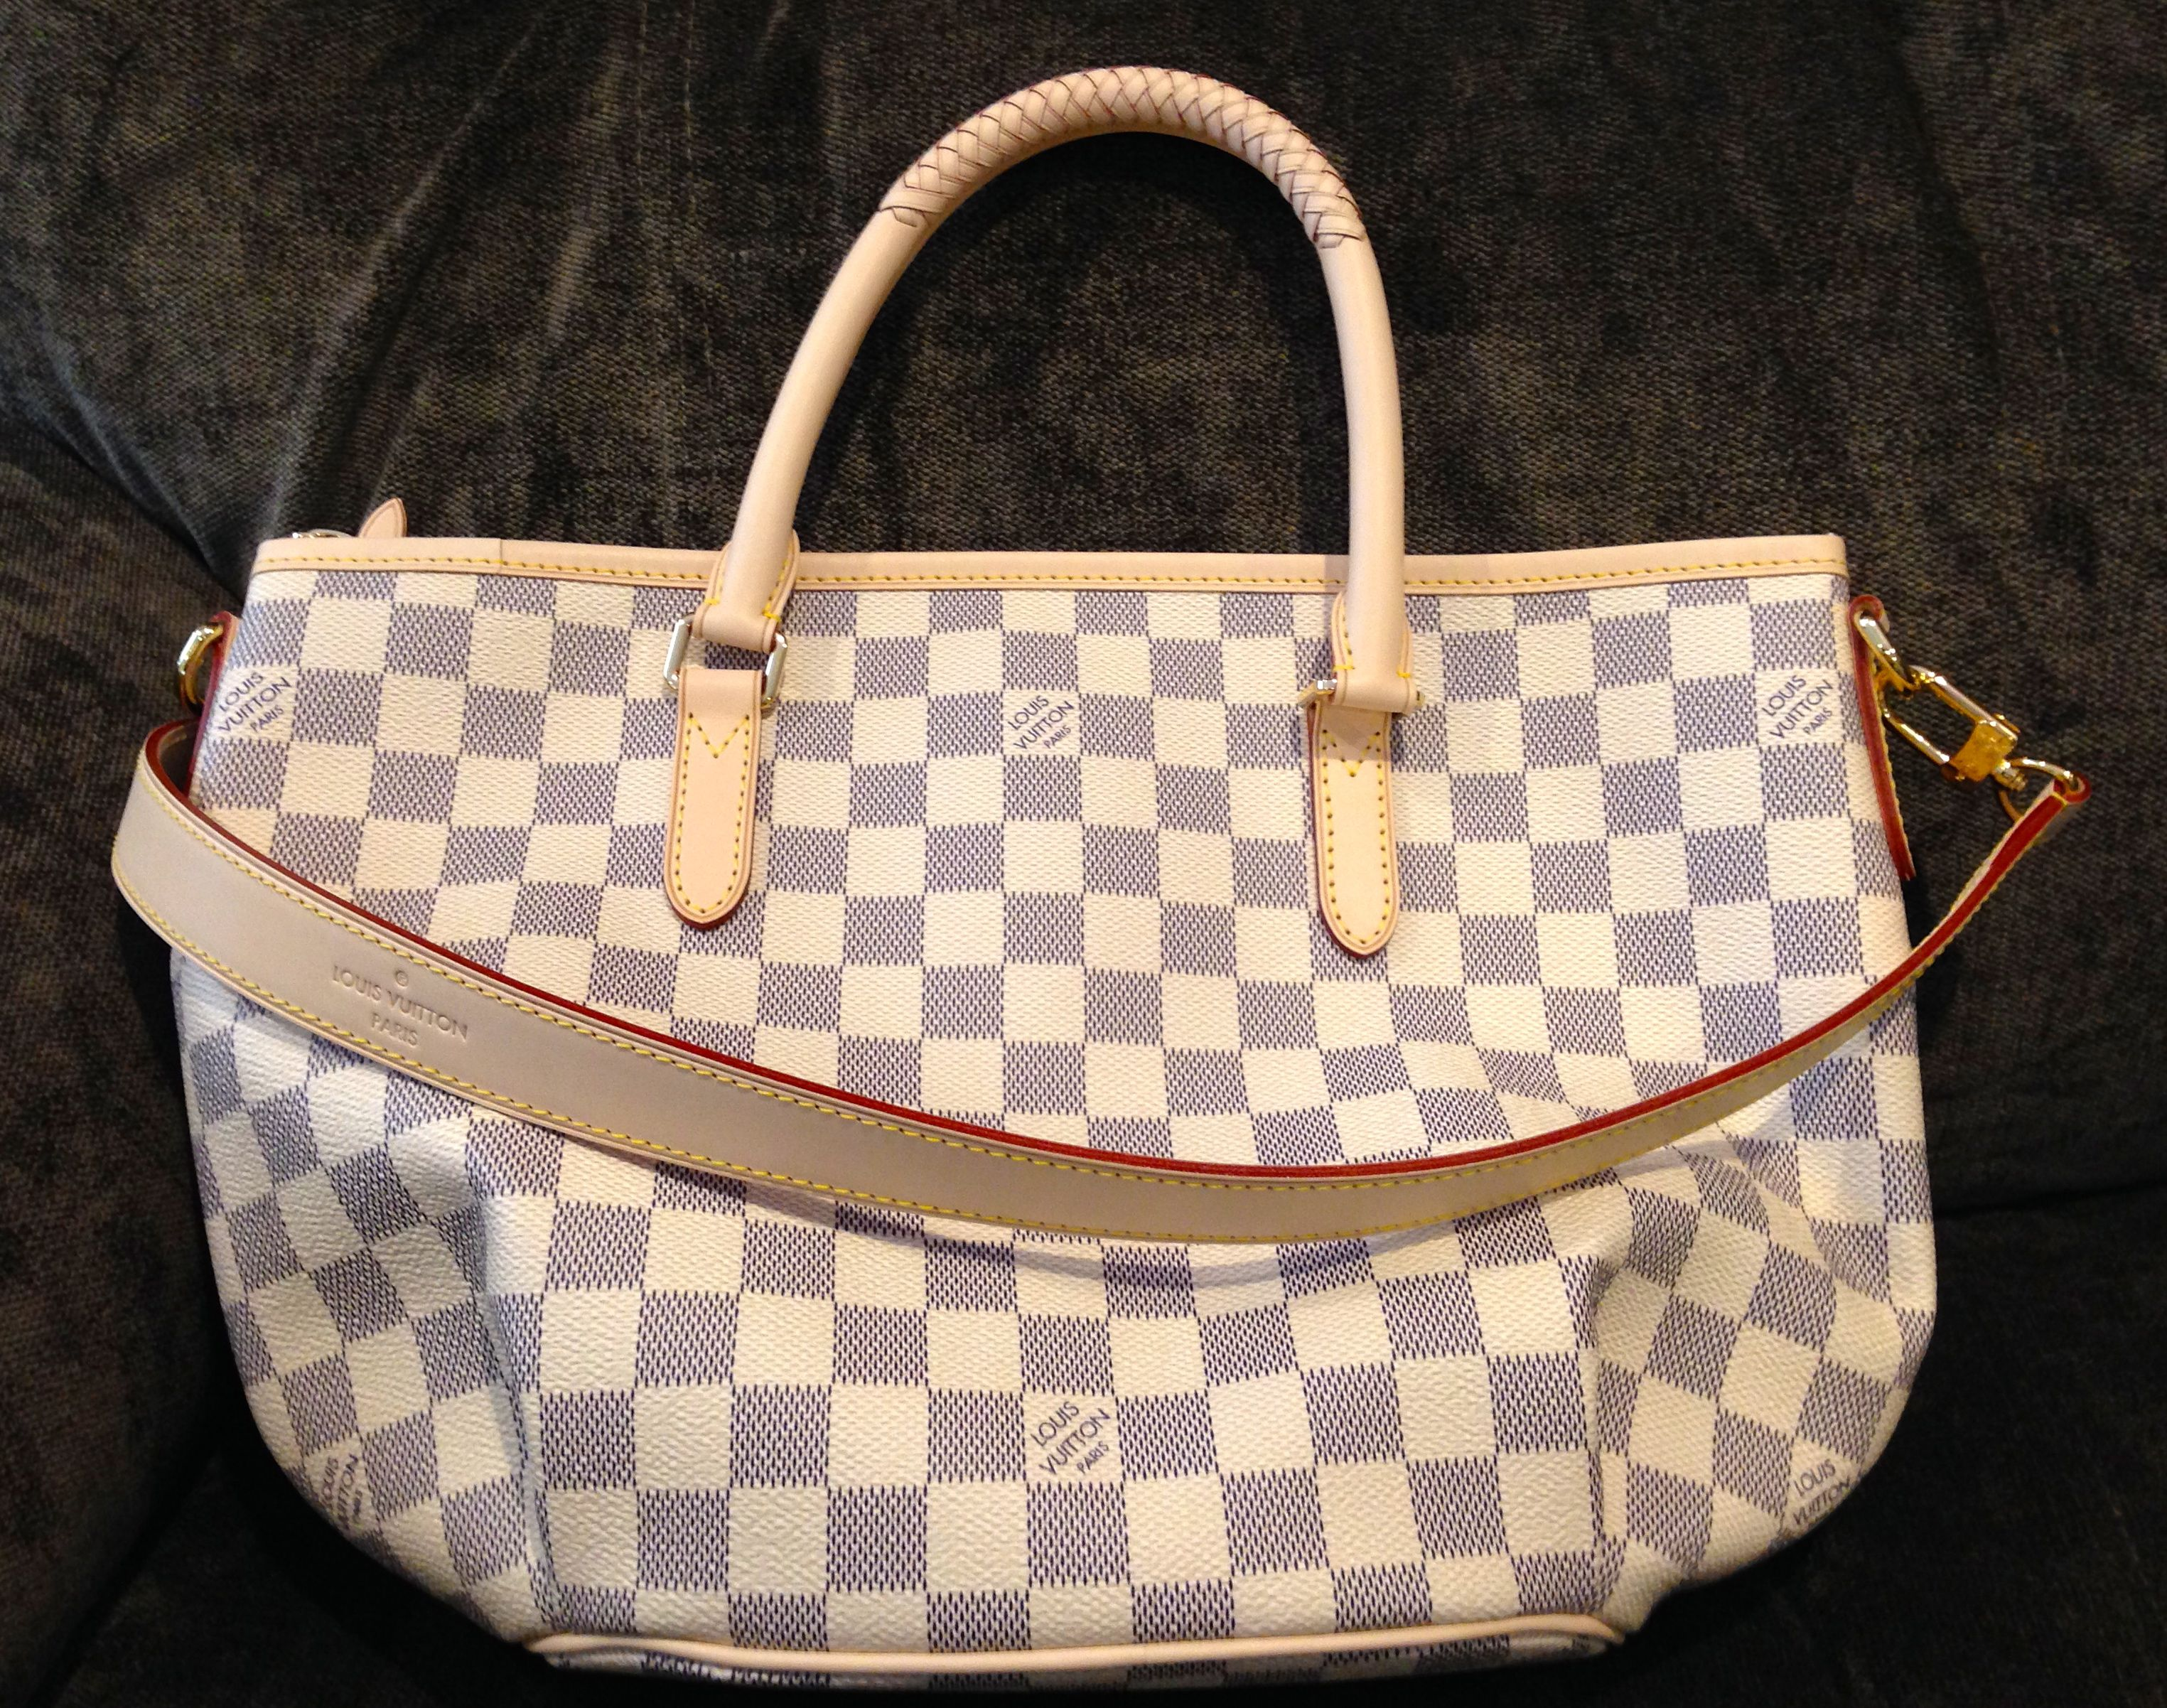 Louis Vuitton Riviera PM in Damier Azur. New for Spring 2014. My brand new  bag…love it!  -) 932c1512e5f4e